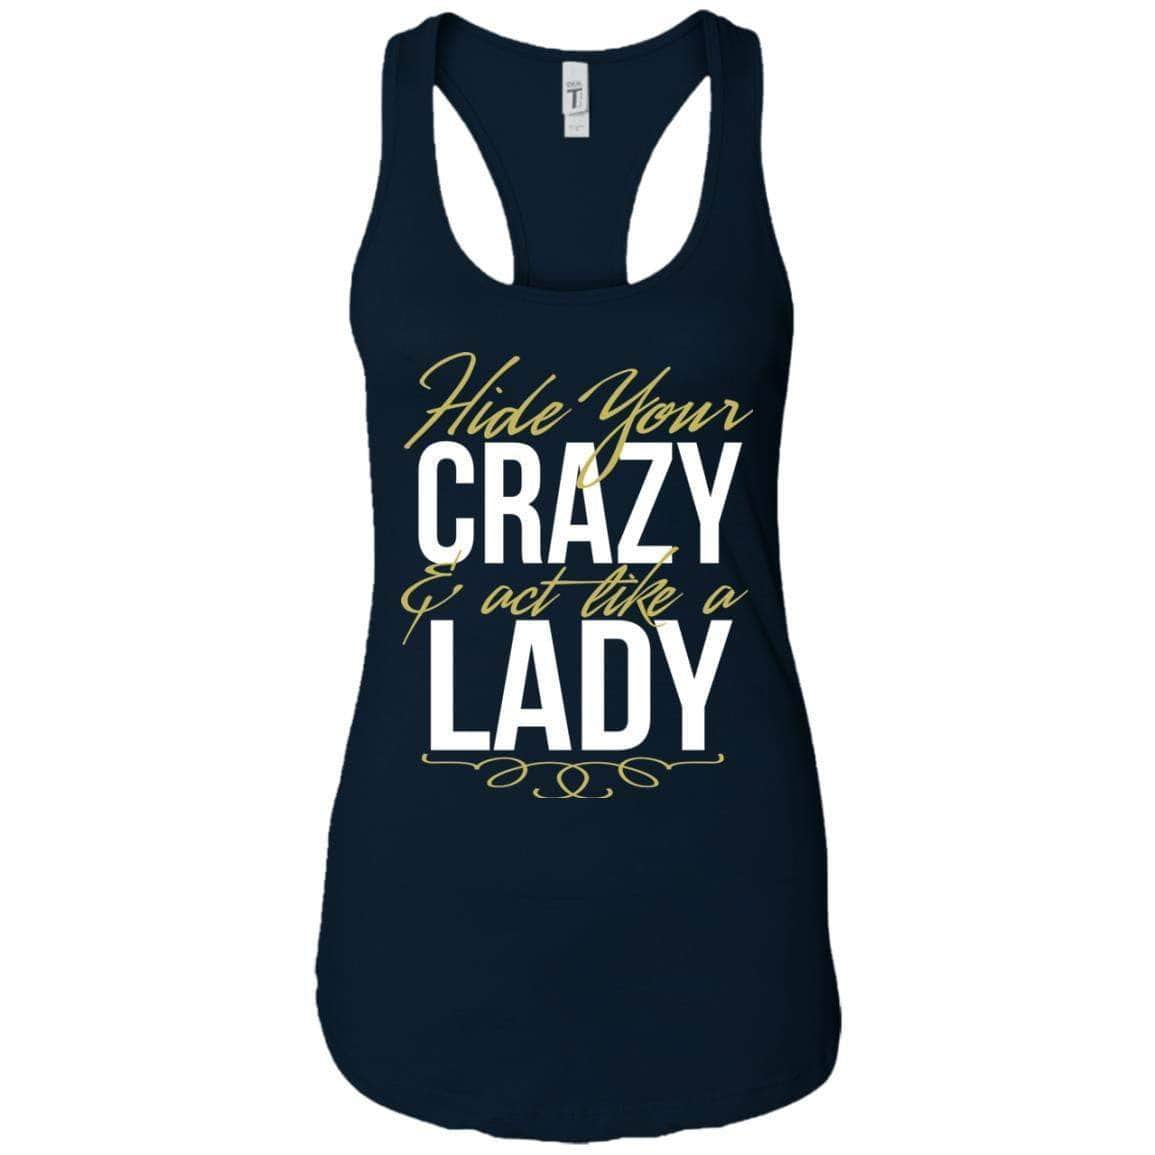 Hide Your Crazy Women's Racerback Tank